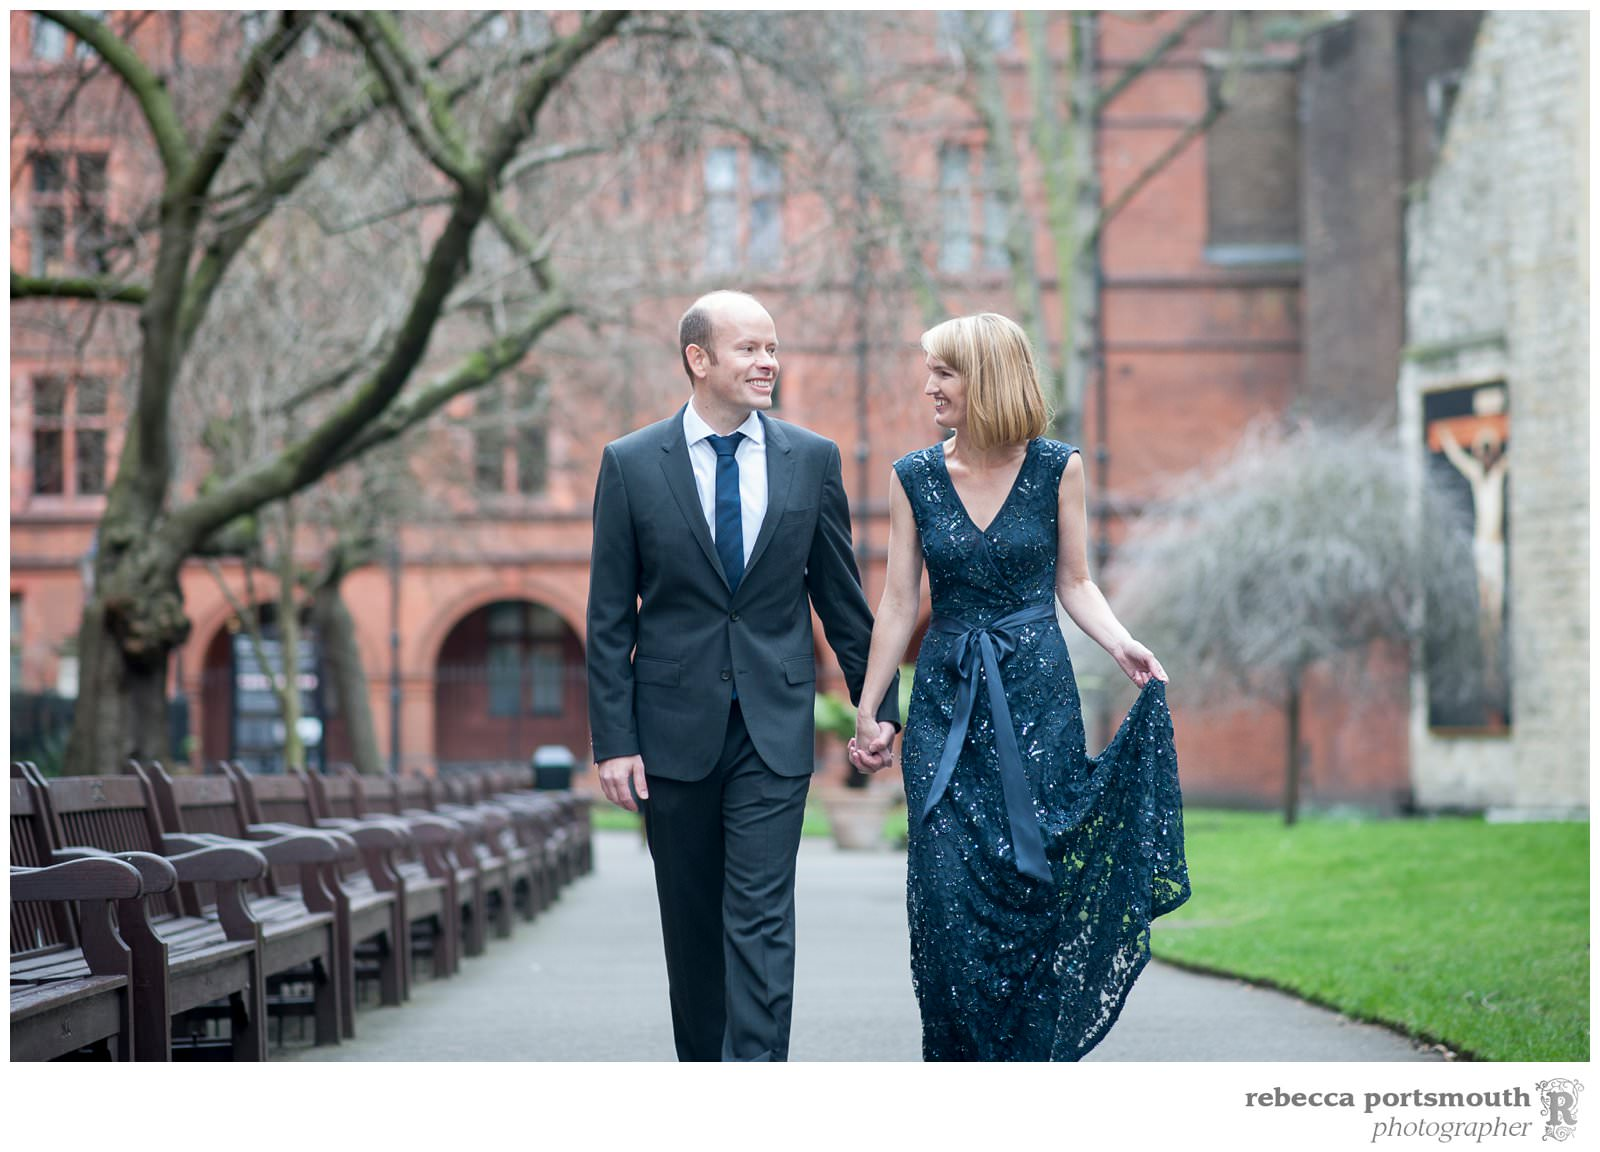 A bride wears a full-length navy lace gown for her vow renewal in bridal portraits in London's Mount Street Gardens.